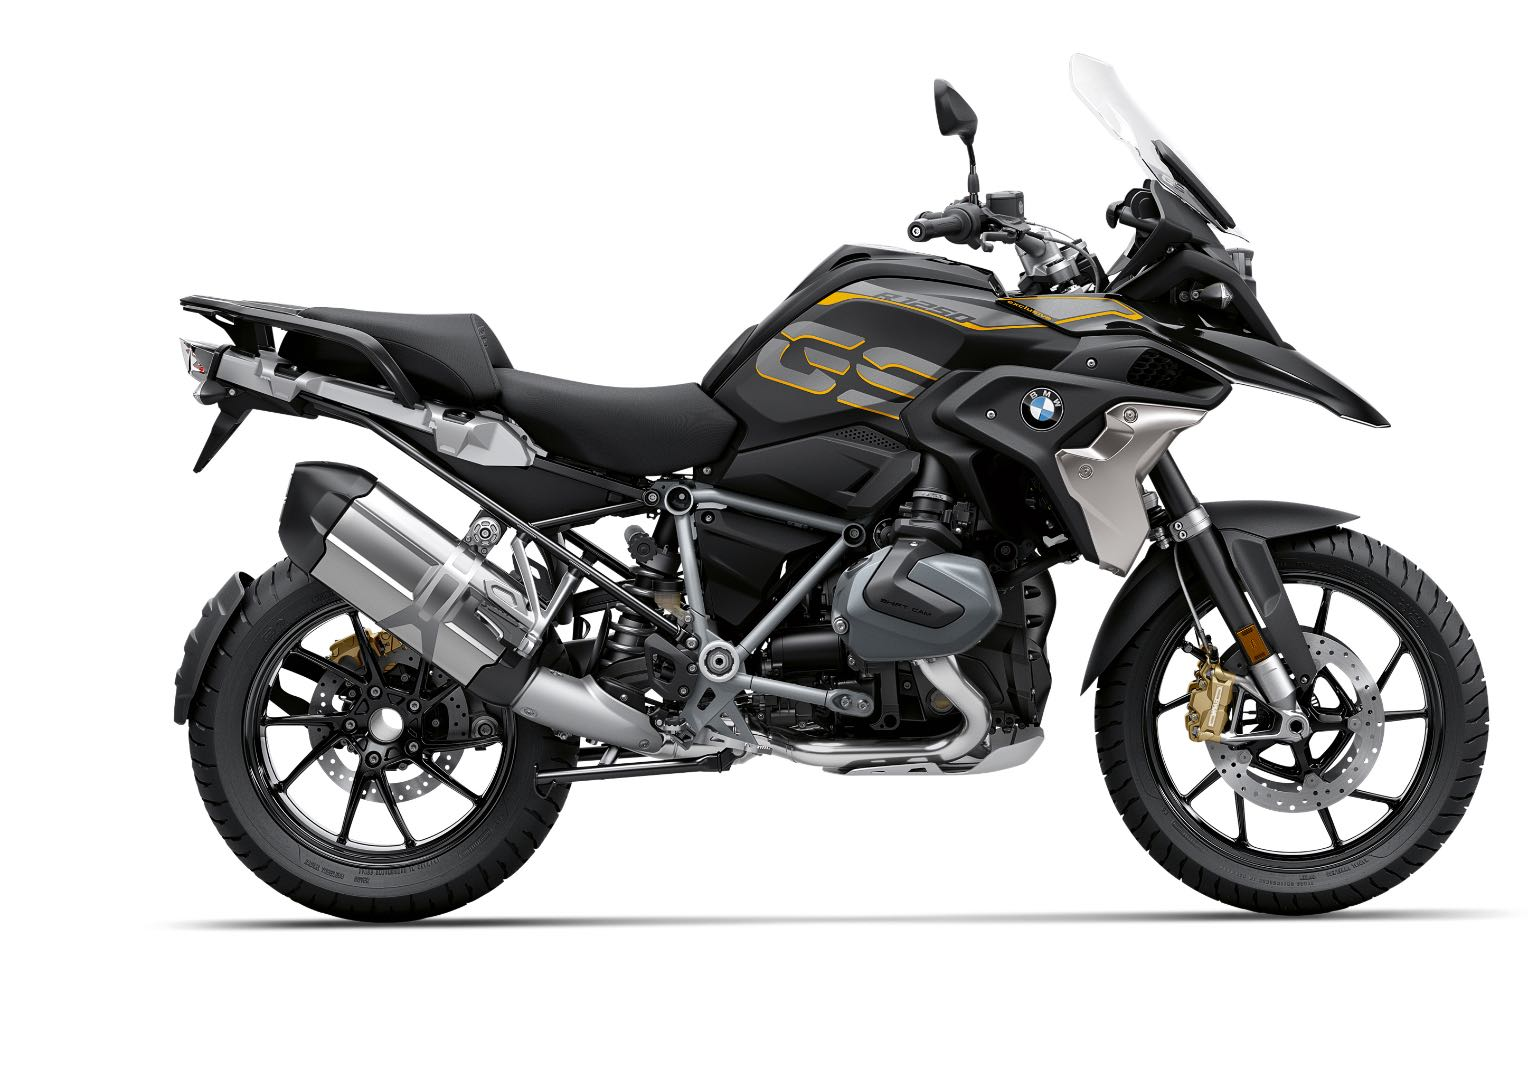 2019 BMW R 1250 GS brown